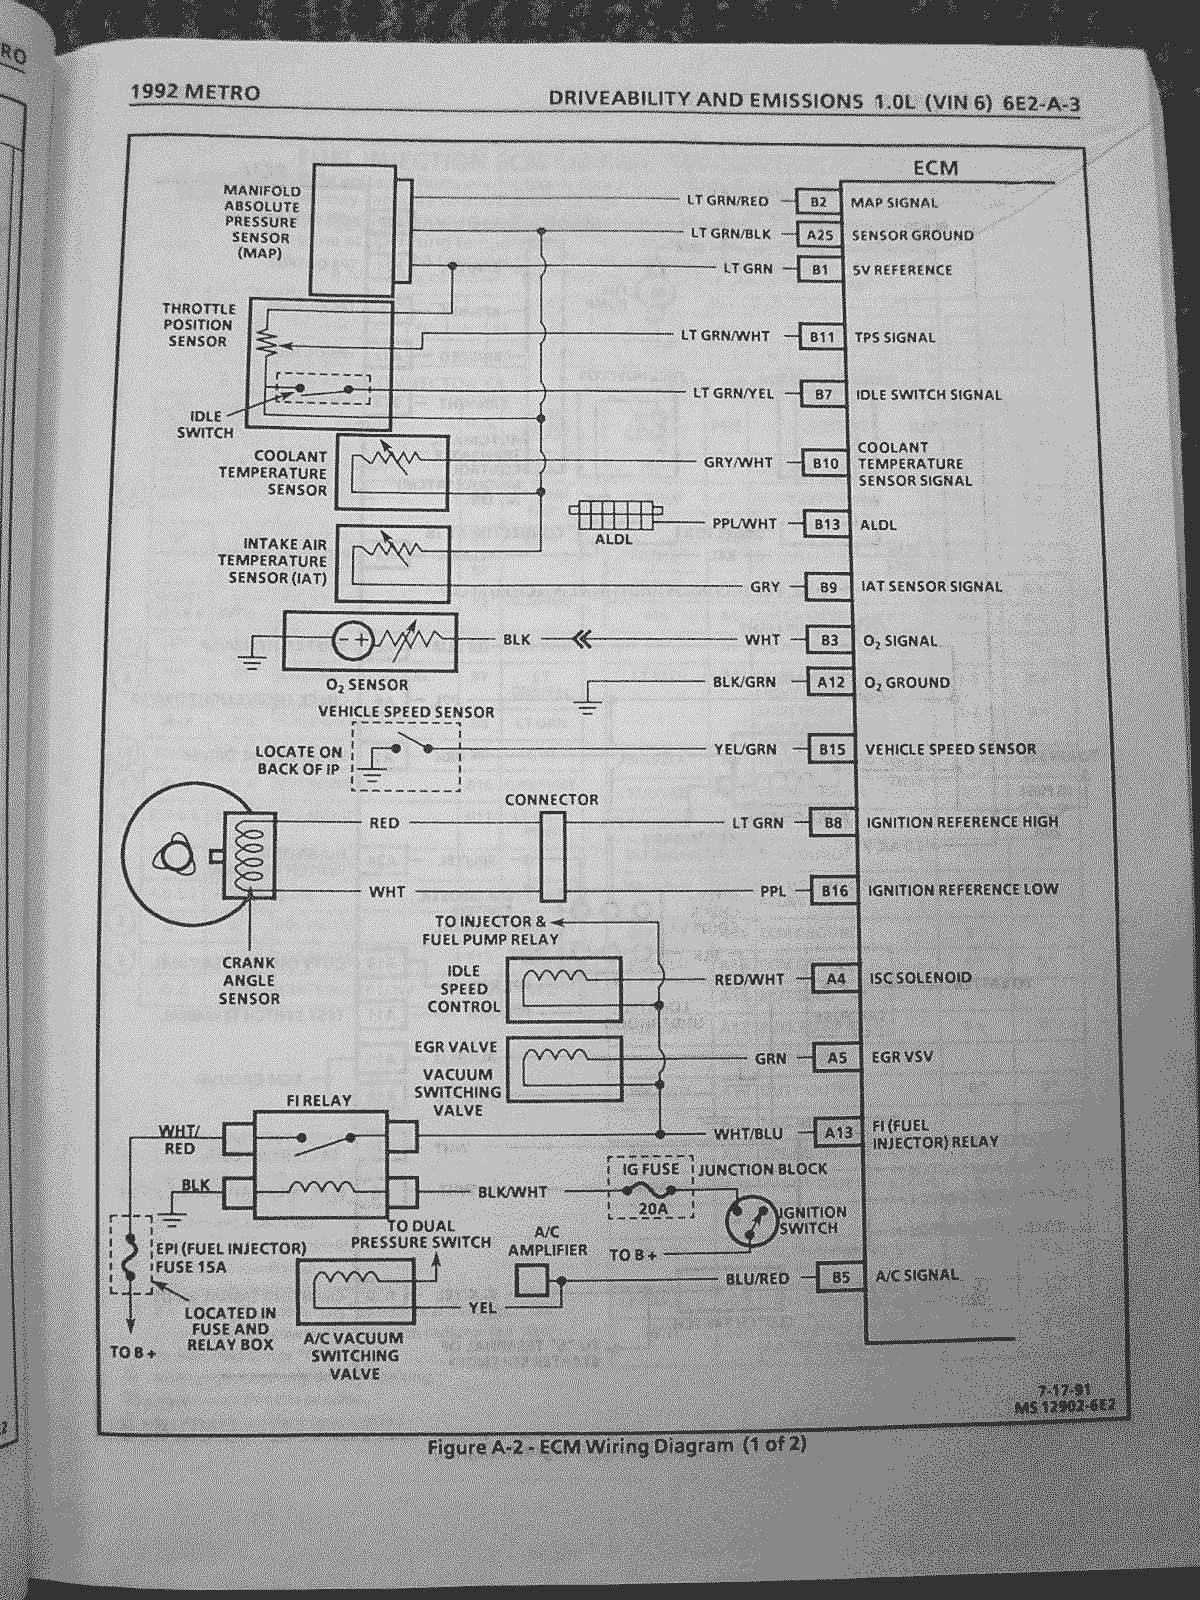 Suzuki Alto Wiring Diagram Pdf - Wiring Diagram And Schematics on